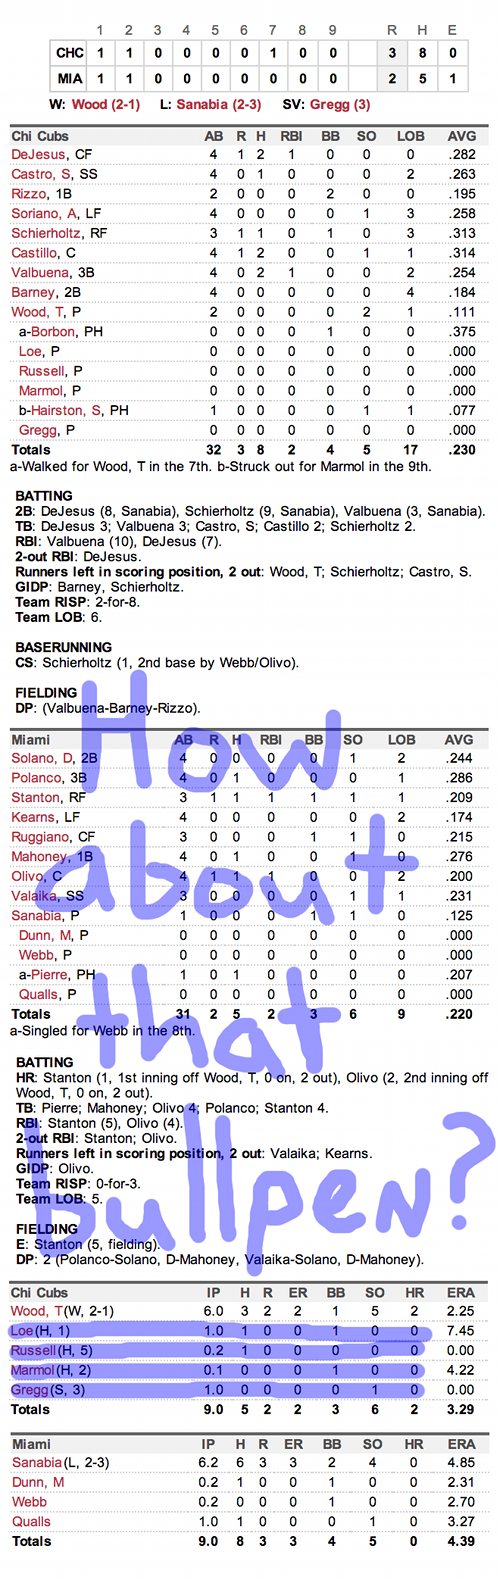 Enhanced Box Score: Cubs 3, Marlins 2 – April 27, 2013